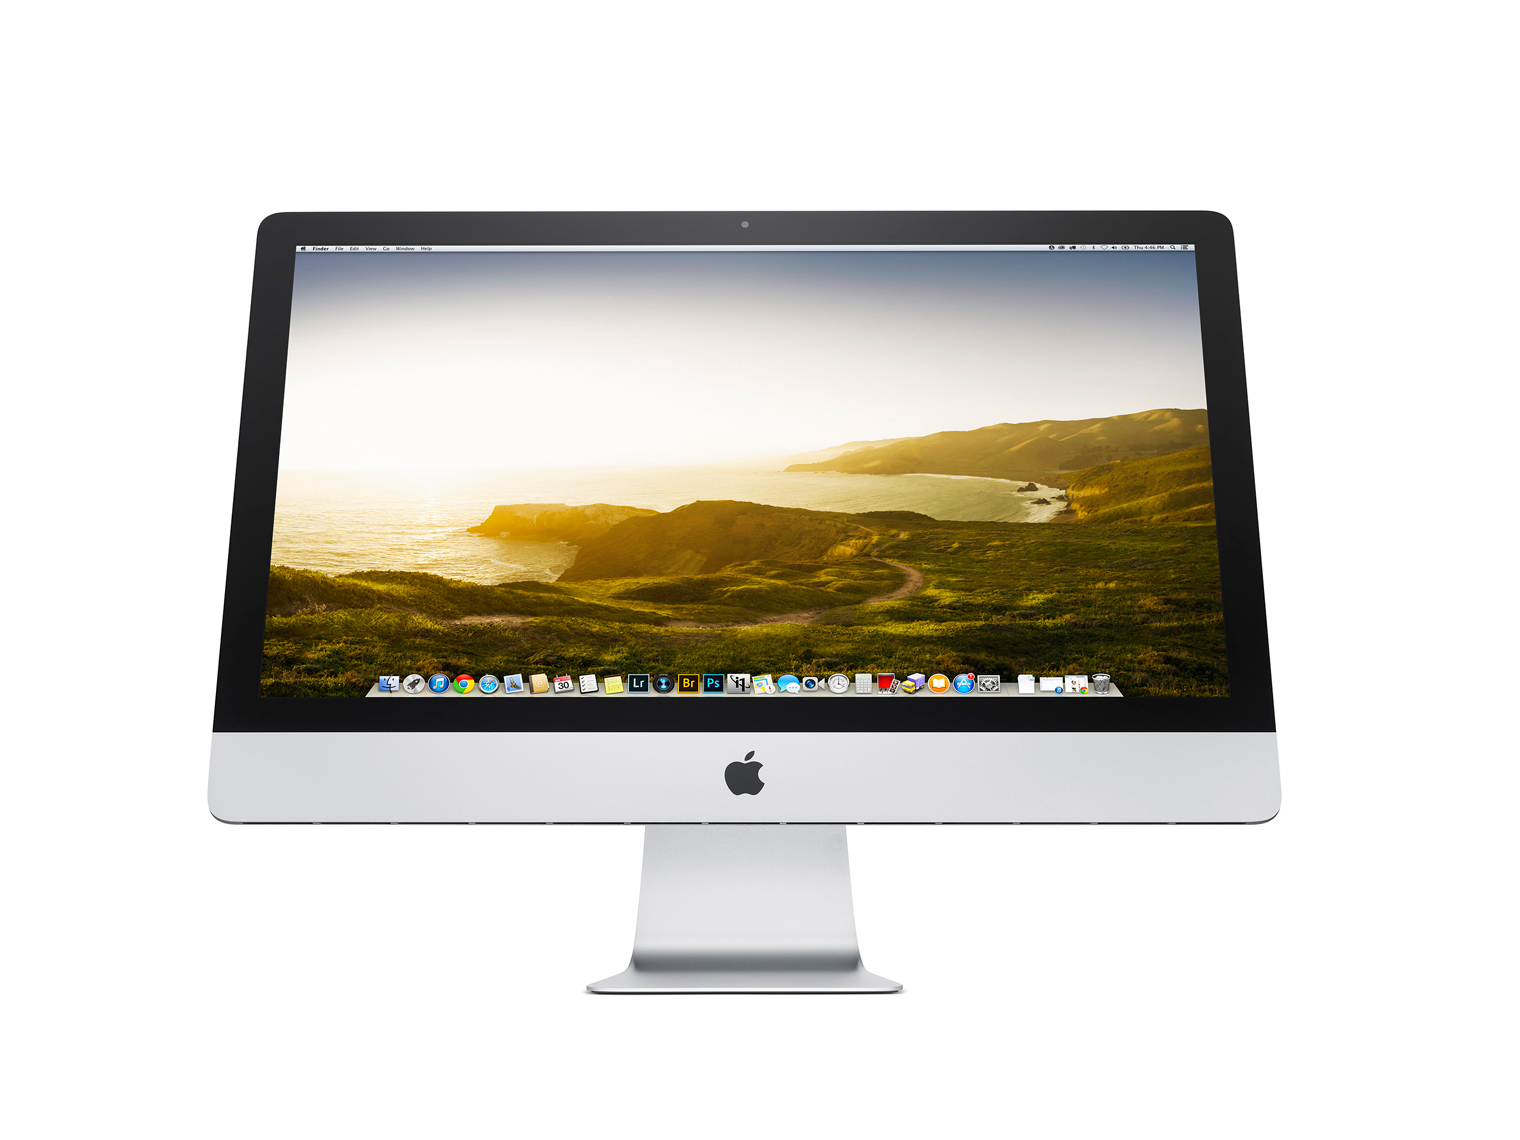 IMAC-FRONT_01_R1-FPO